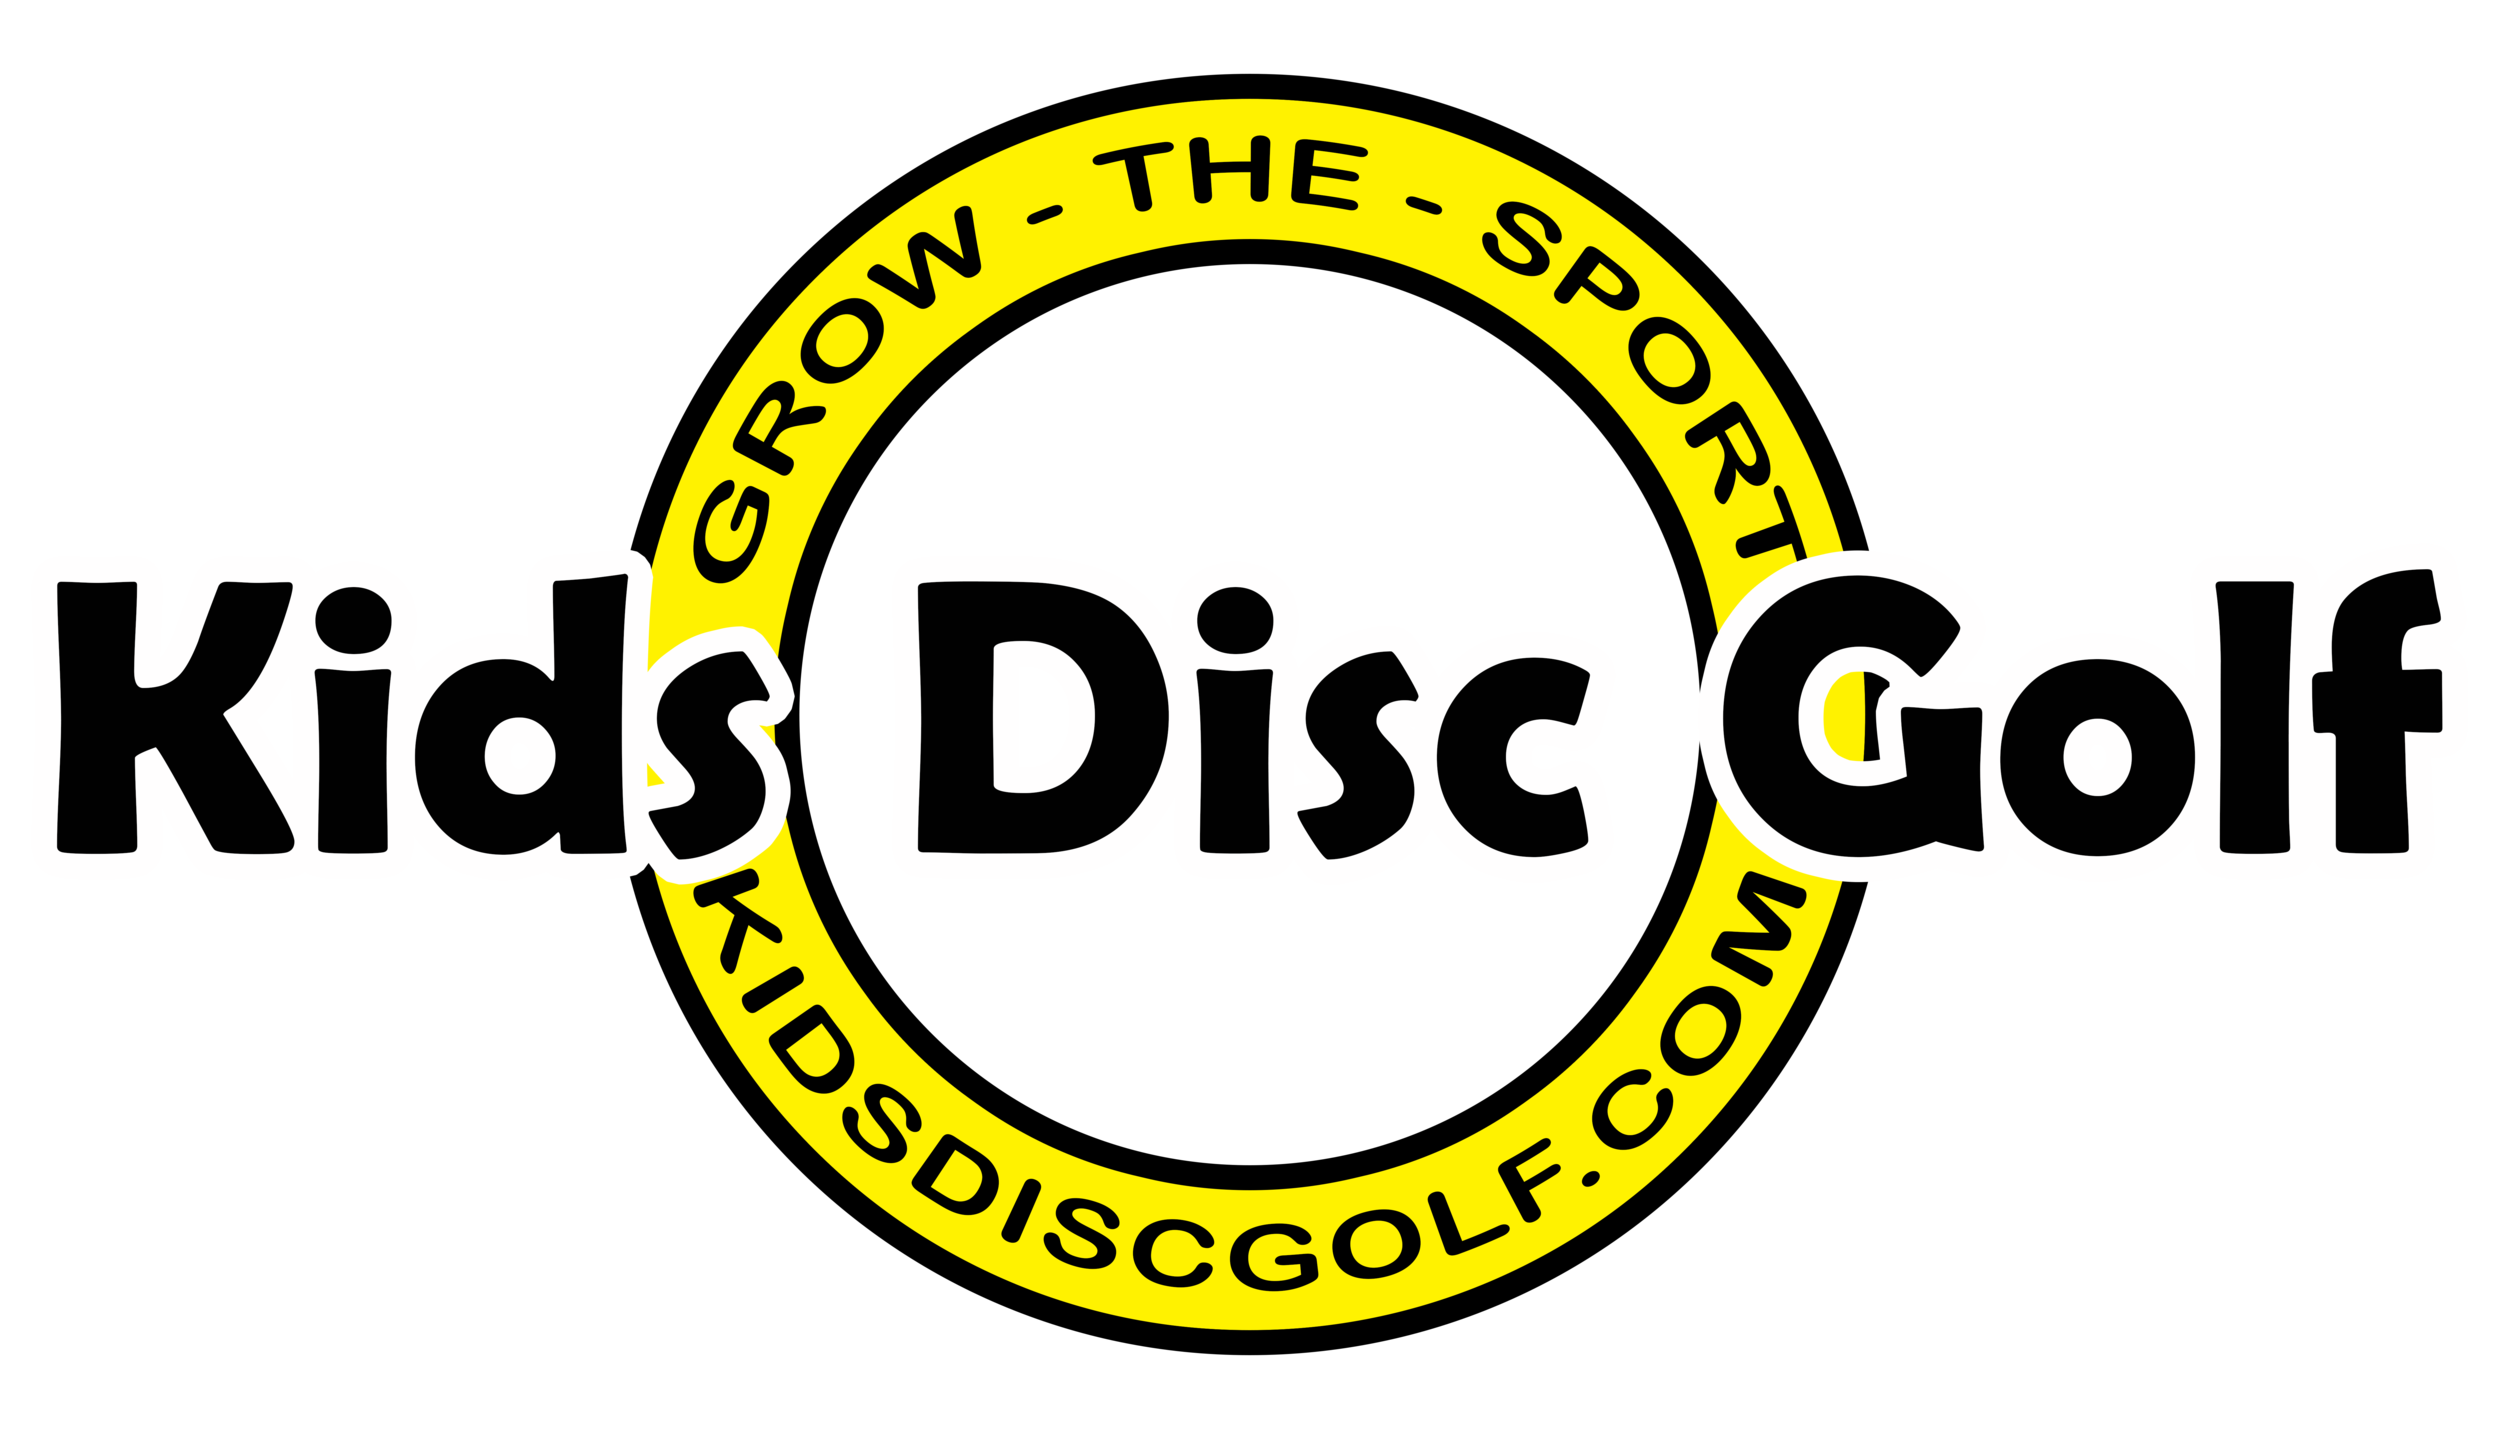 Check out more at the Kids Disc Golf website! - Providing competitive opportunities to junior aged disc golfers!